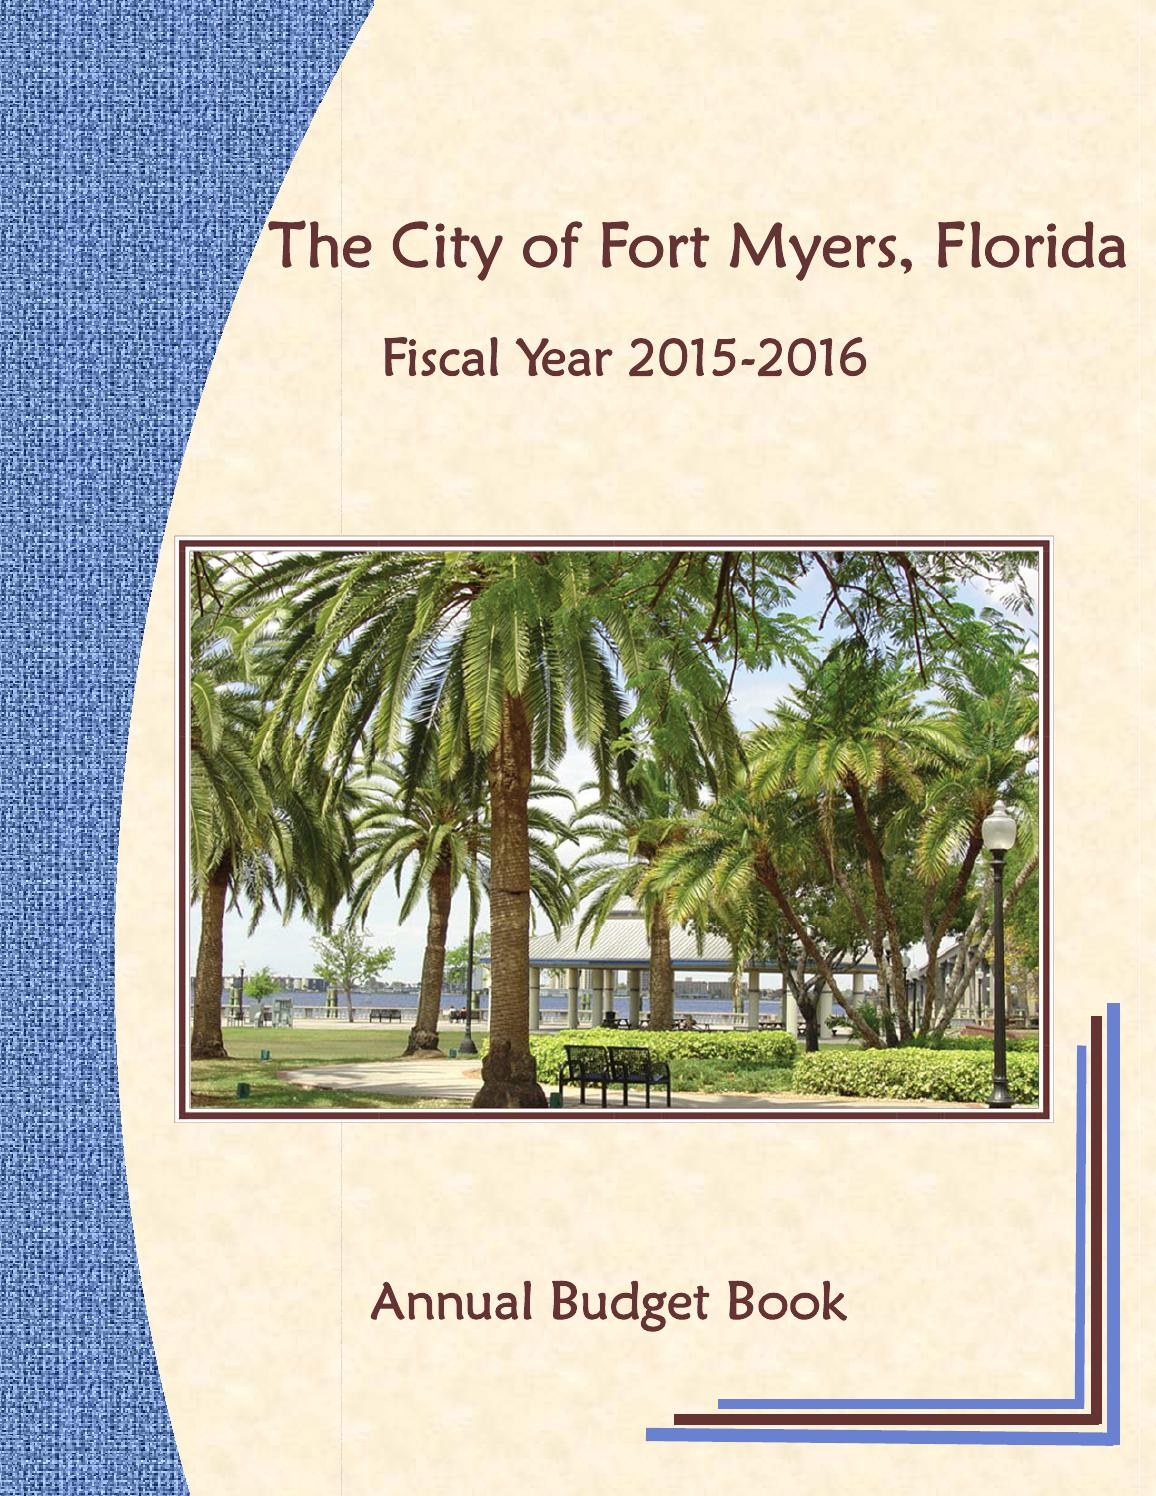 Fort Myers Annual Budget Fy 2015 - 2016Fort Myers intended for Palm Beach County School Calendar 2015/2020